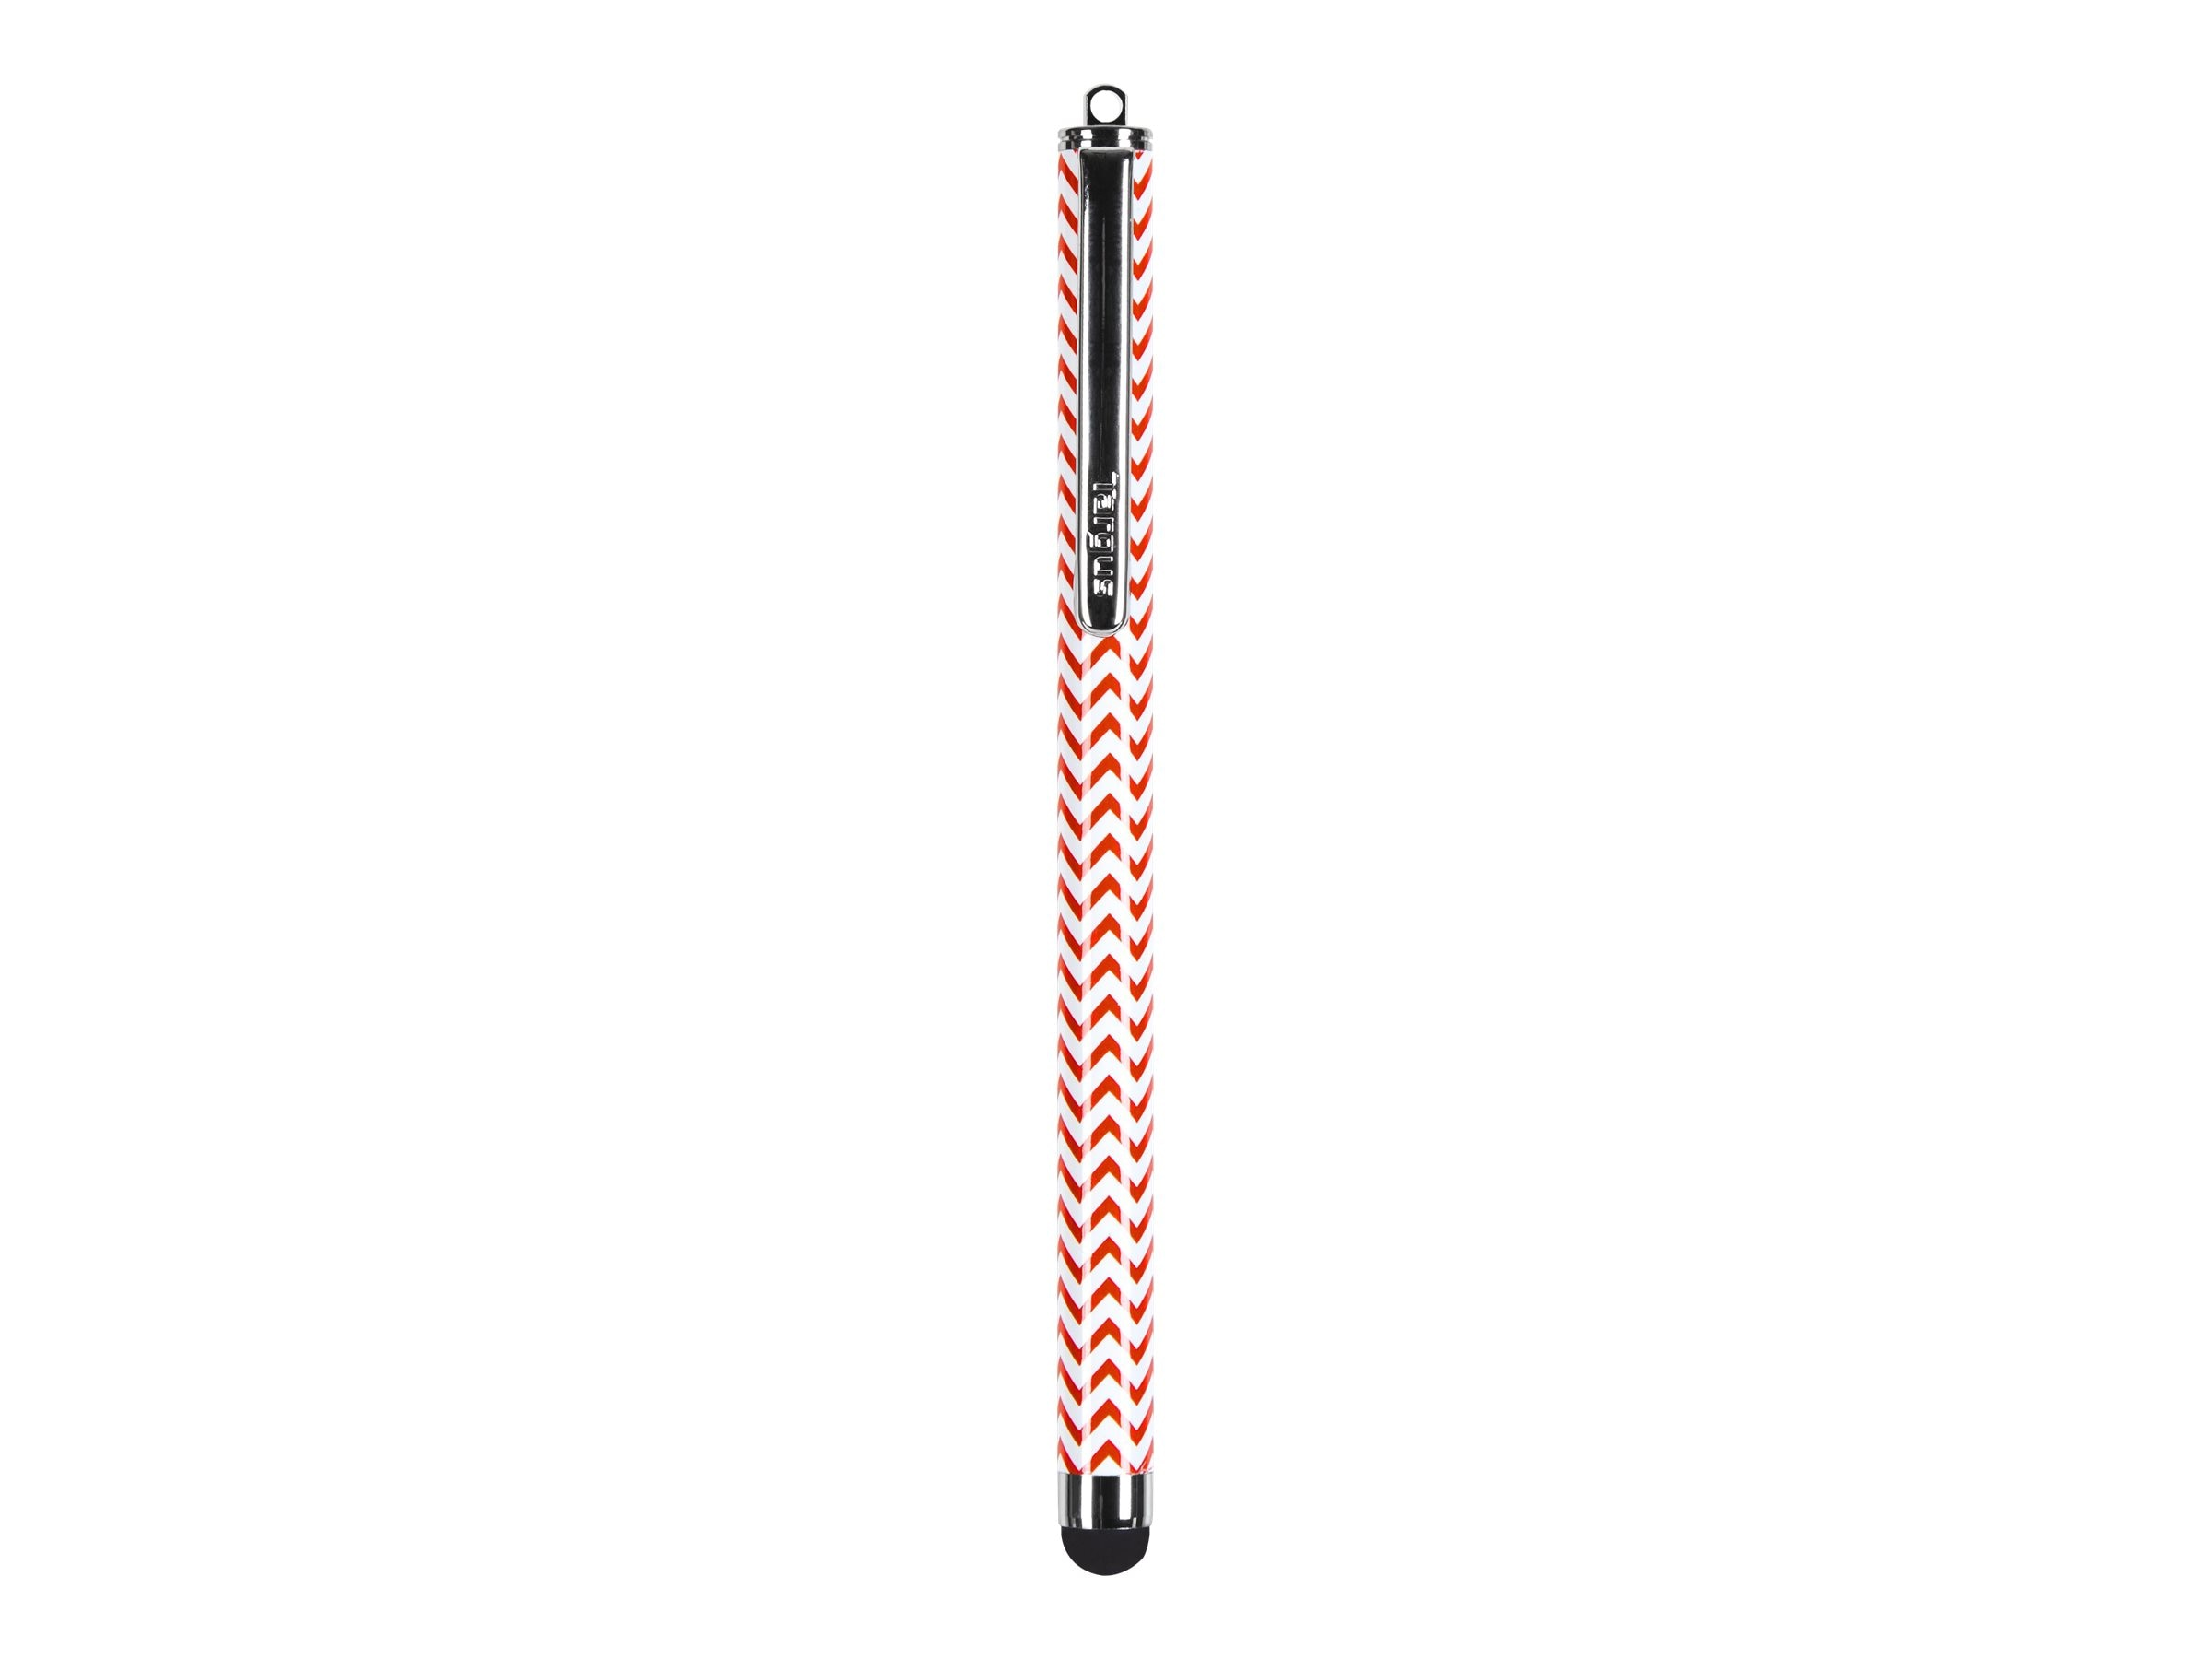 Targus Chevron Patterned Stylus, Red